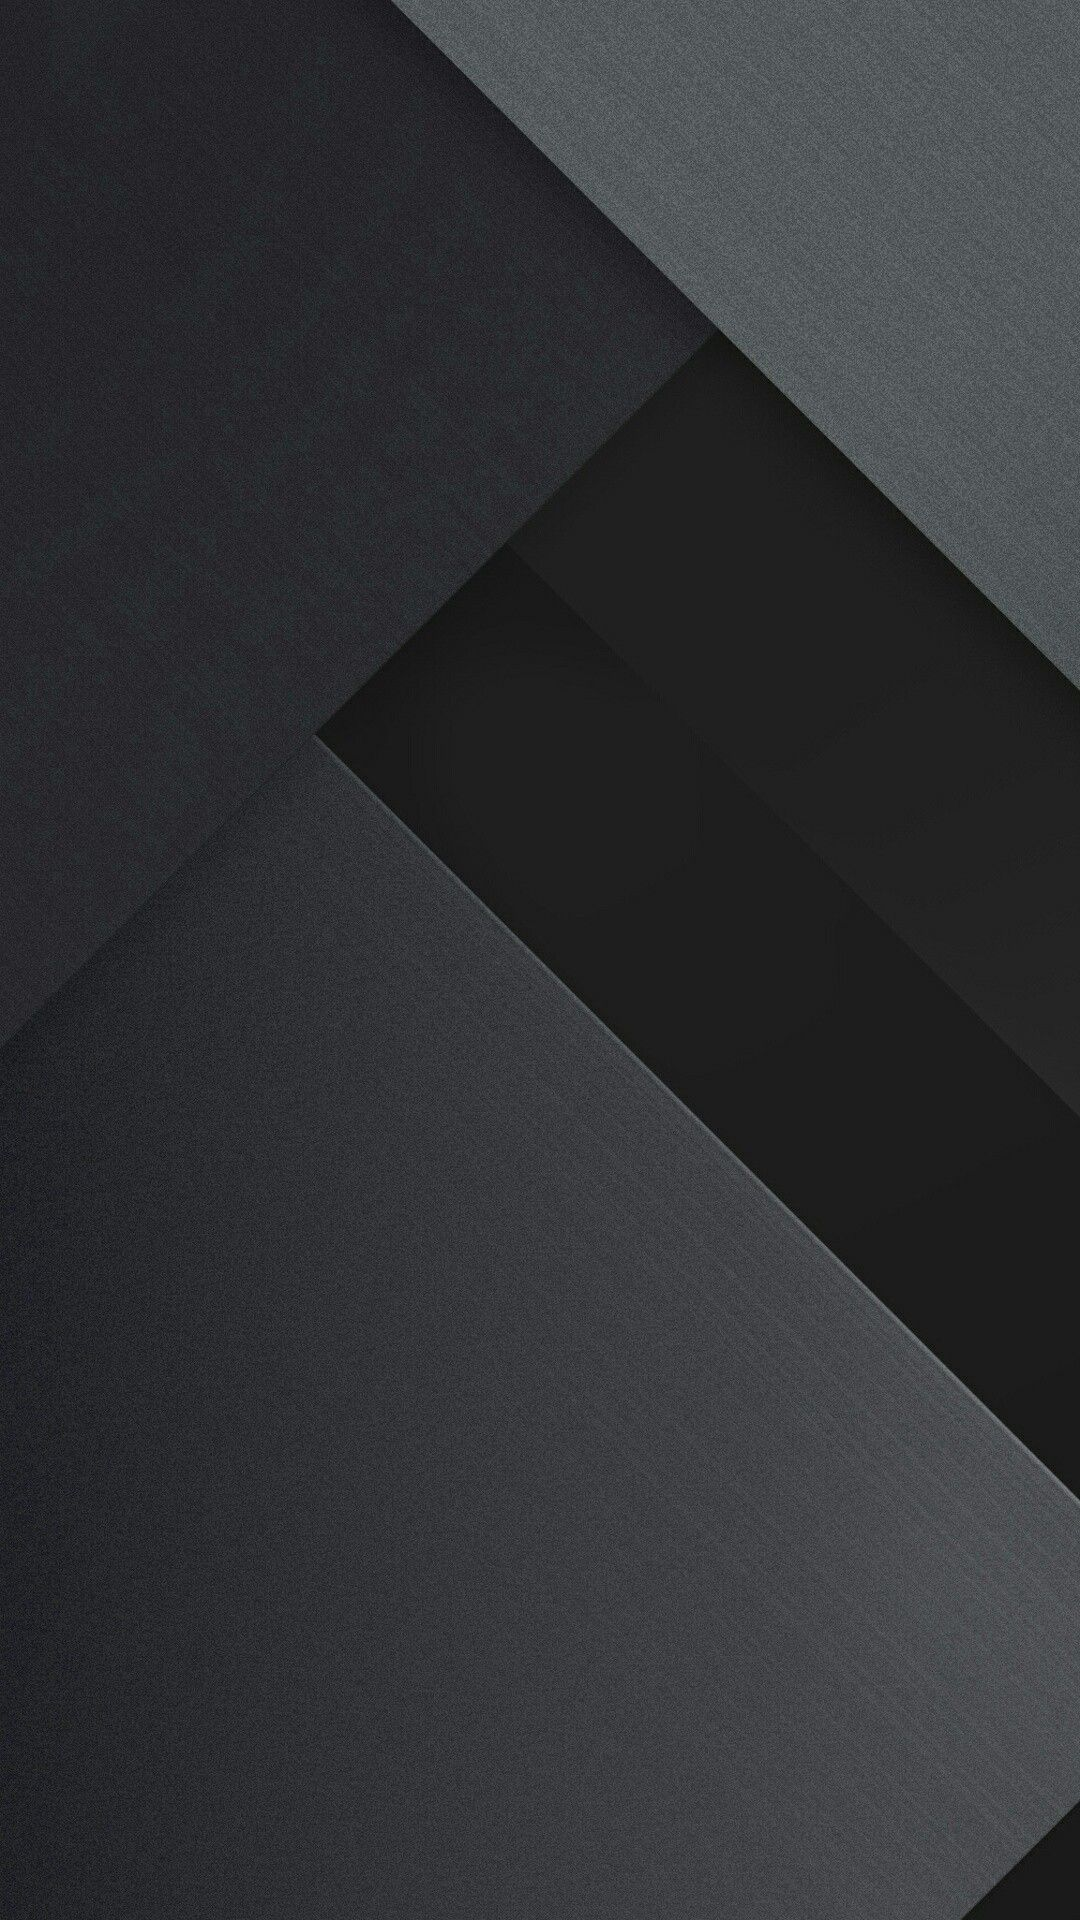 Grey Scale Abstract Wallpaper Abstract And Geometric